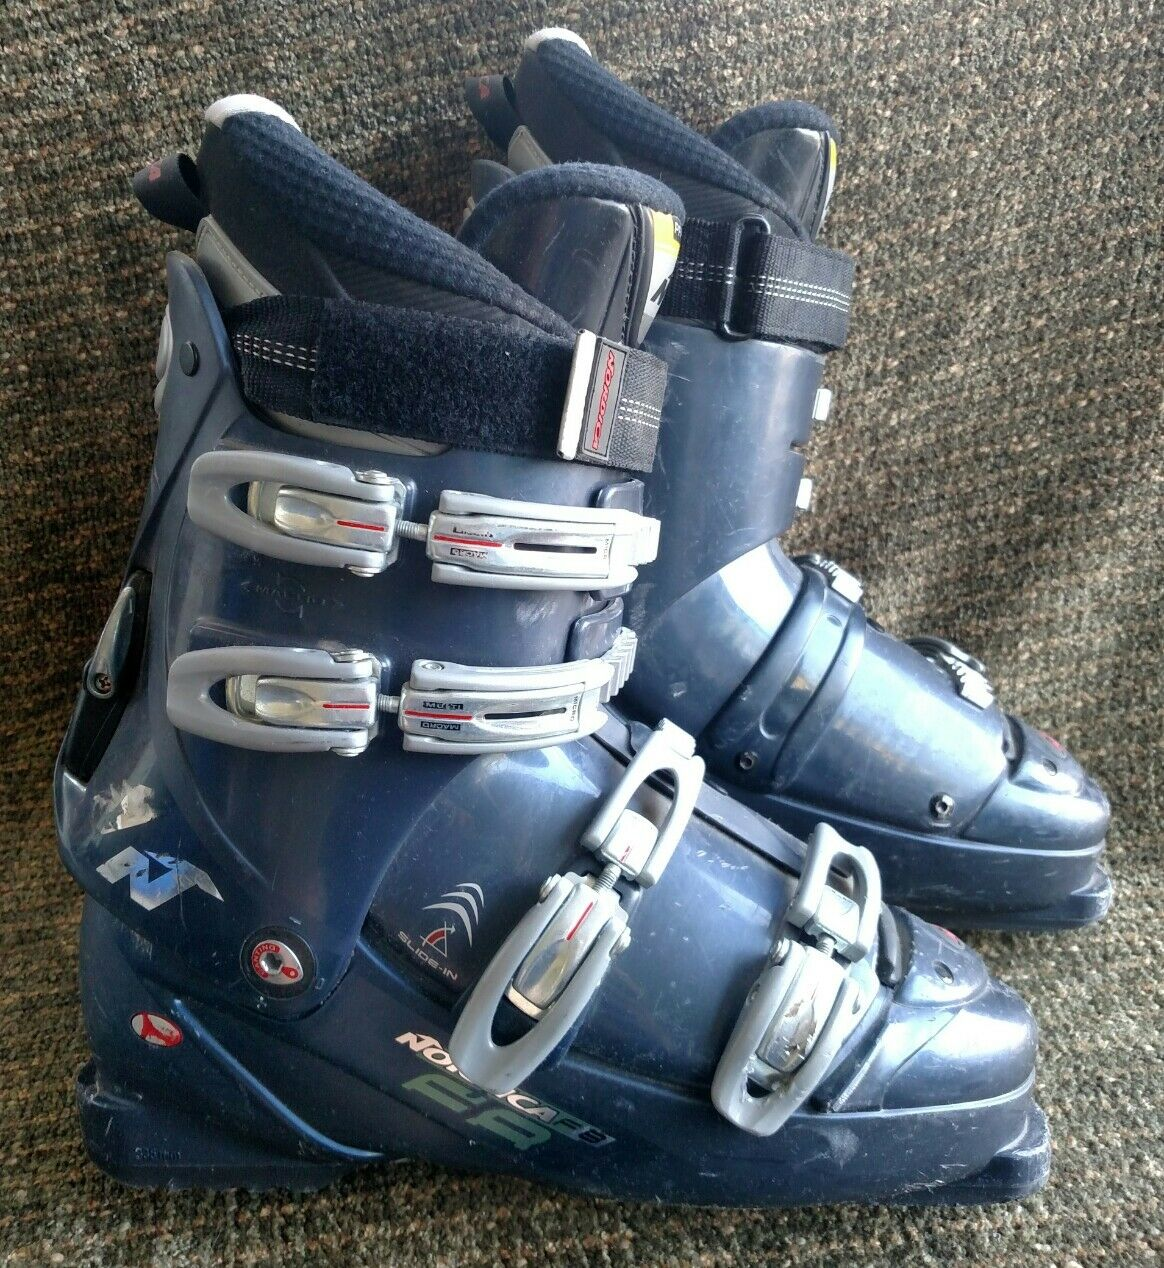 Nordica F8 335mm bluee downhill ski boots size 11.5 US women's